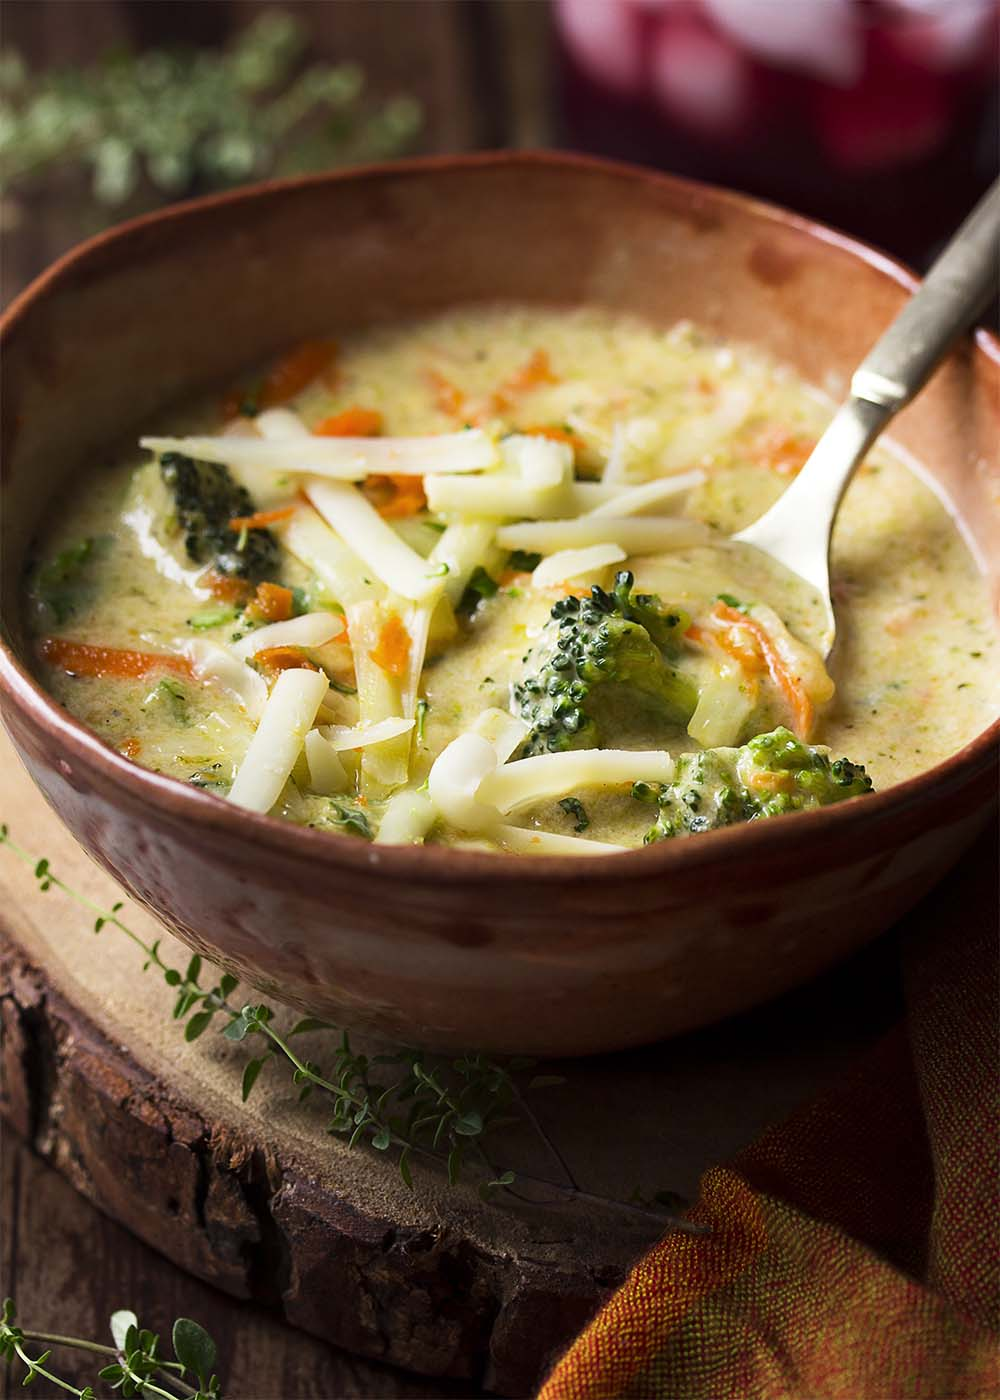 A bowl of broccoli soup topped with shredded cheese. A spoon in the bowl.